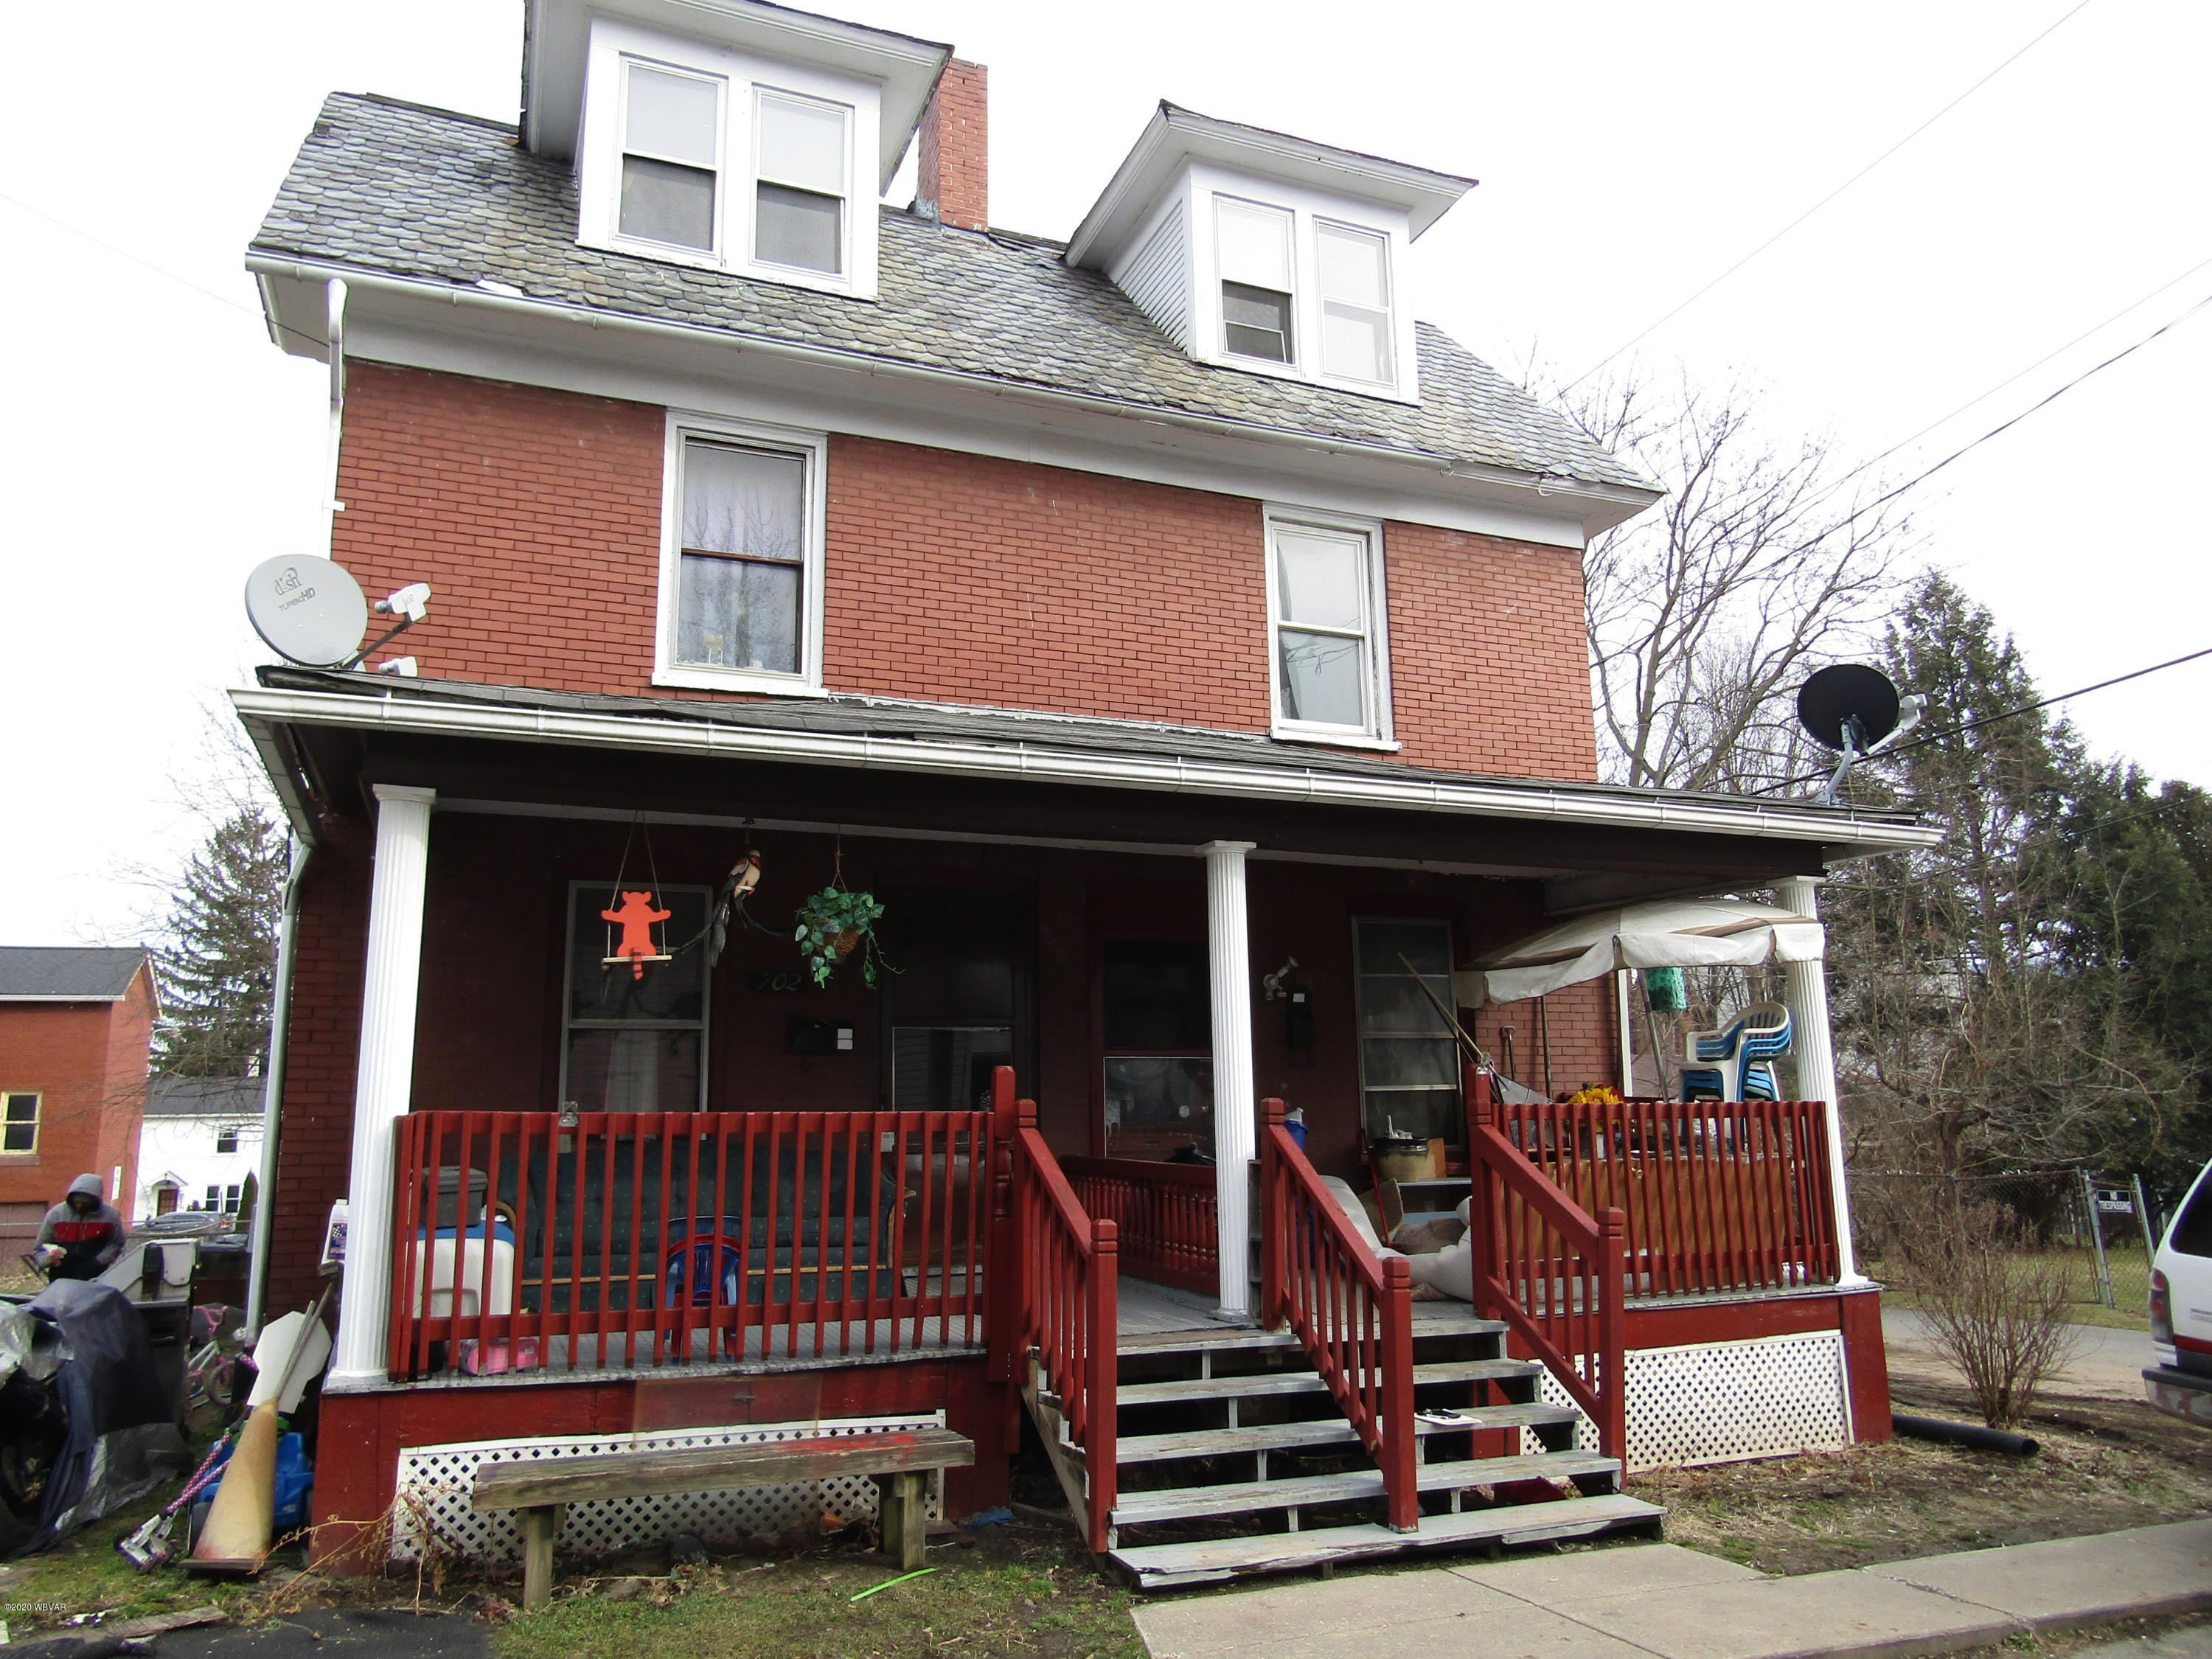 700 - 702 STERLING AVENUE, Williamsport, PA 17701, ,Multi-units,For sale,STERLING,WB-89580